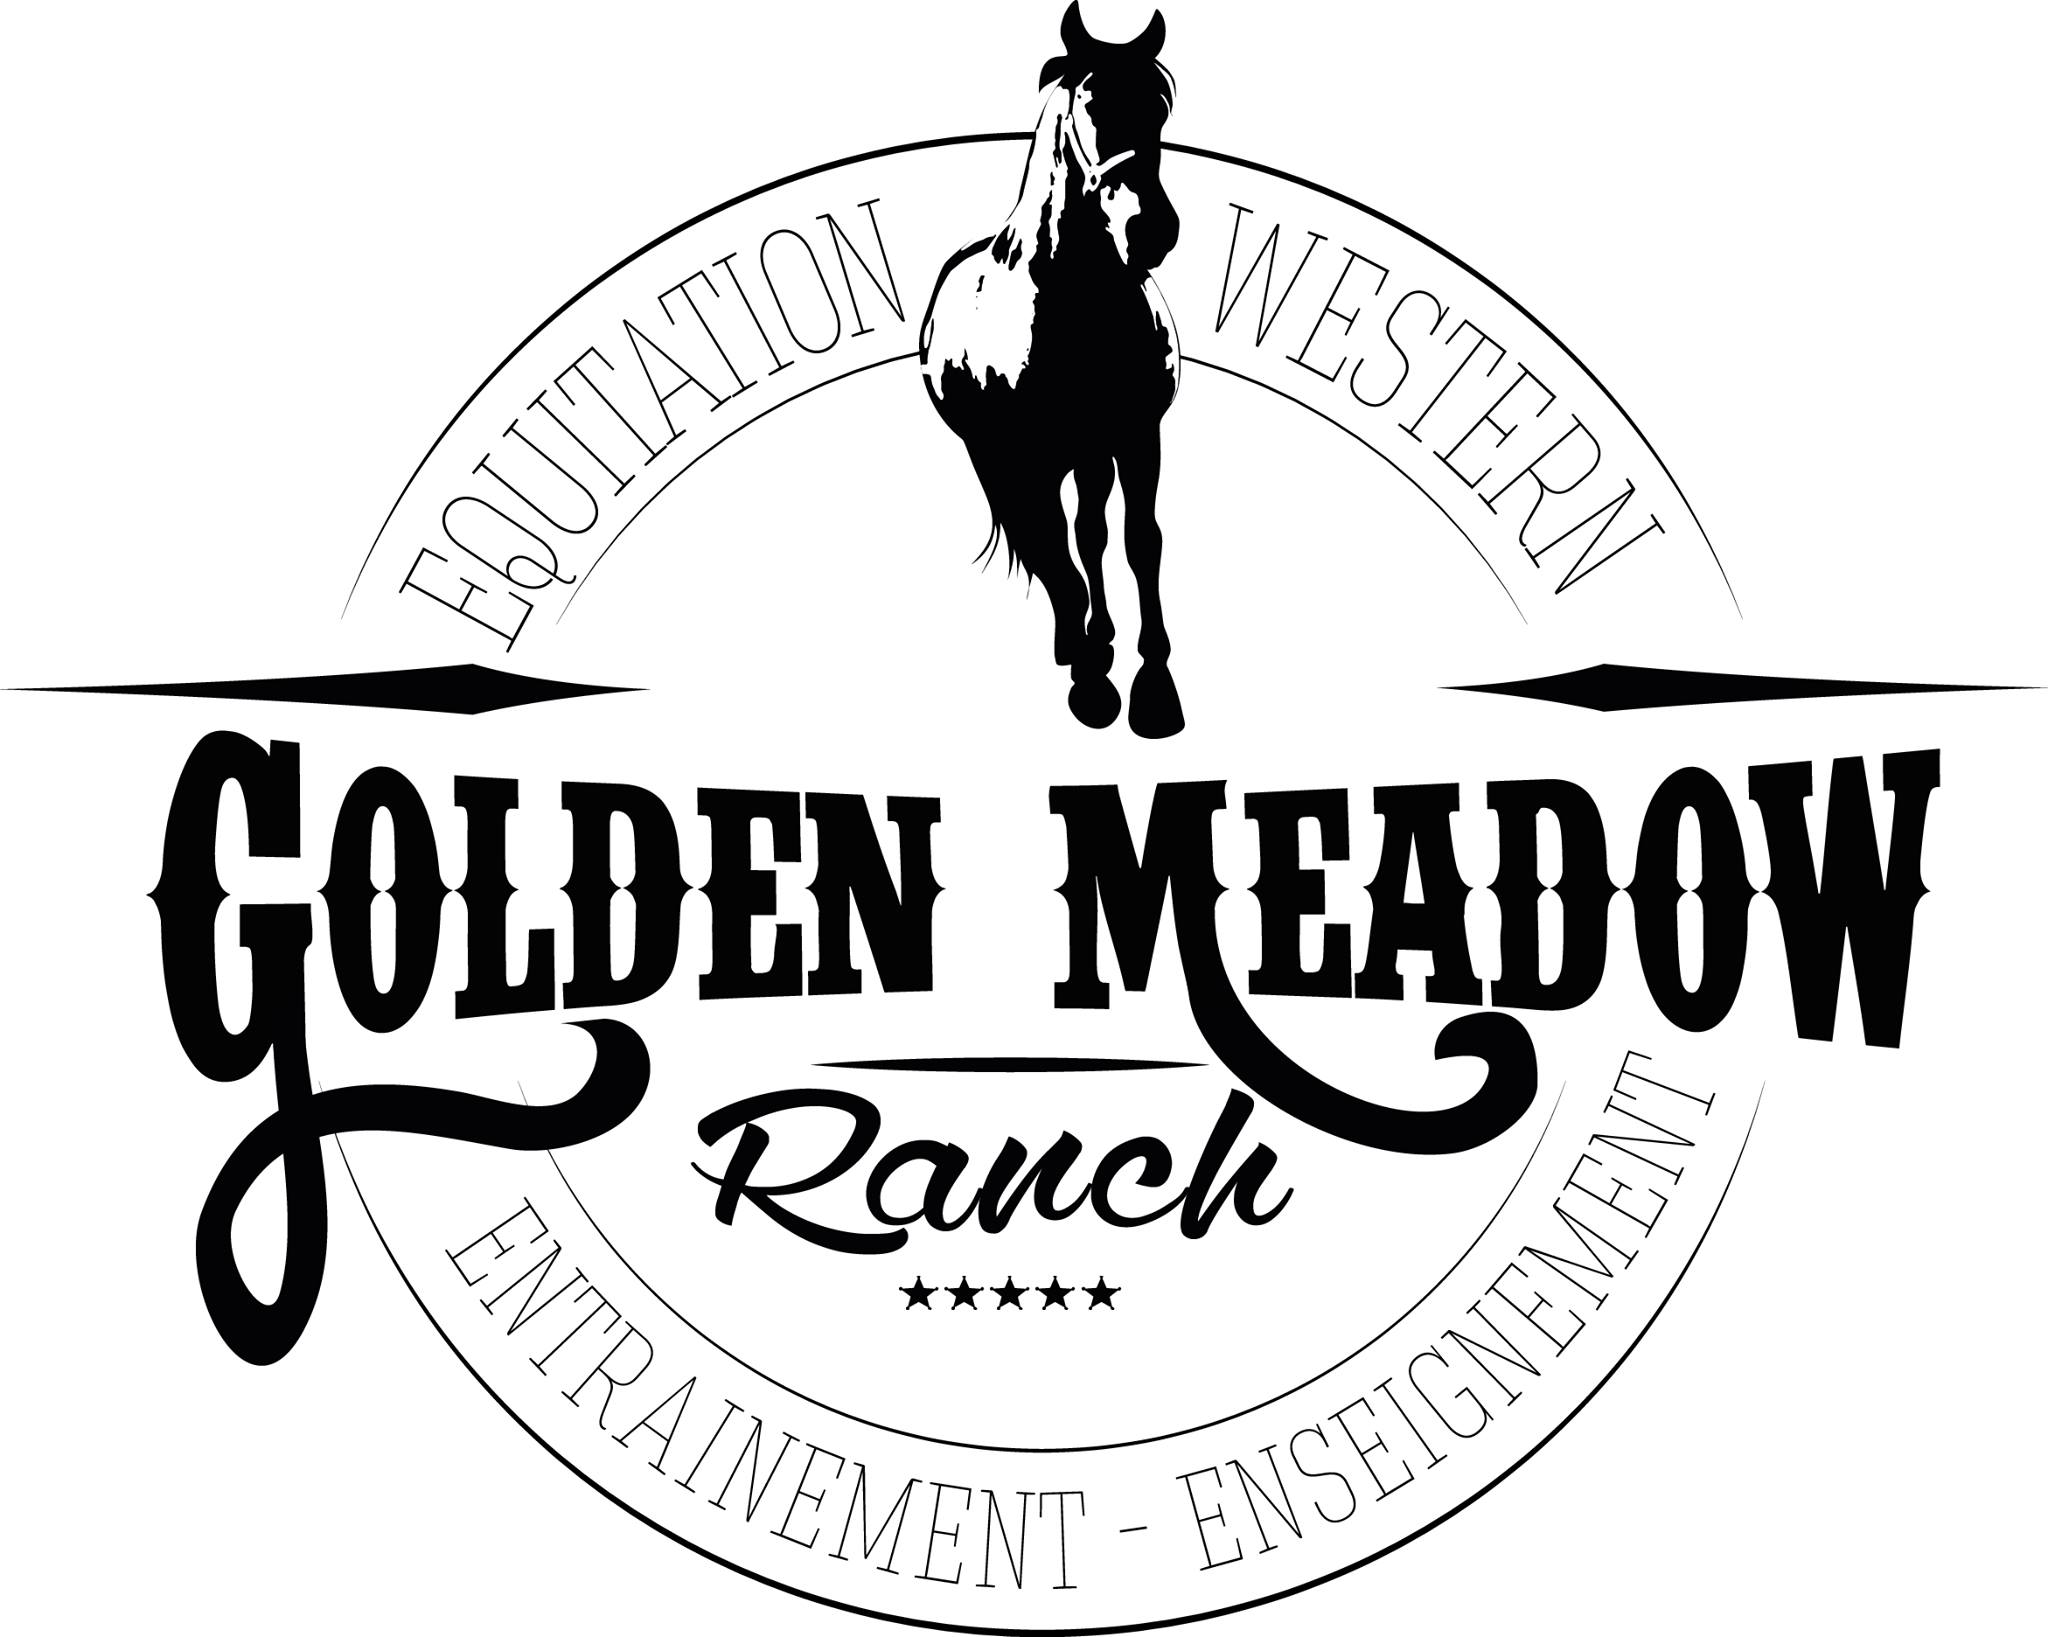 Golden Meadow Ranch